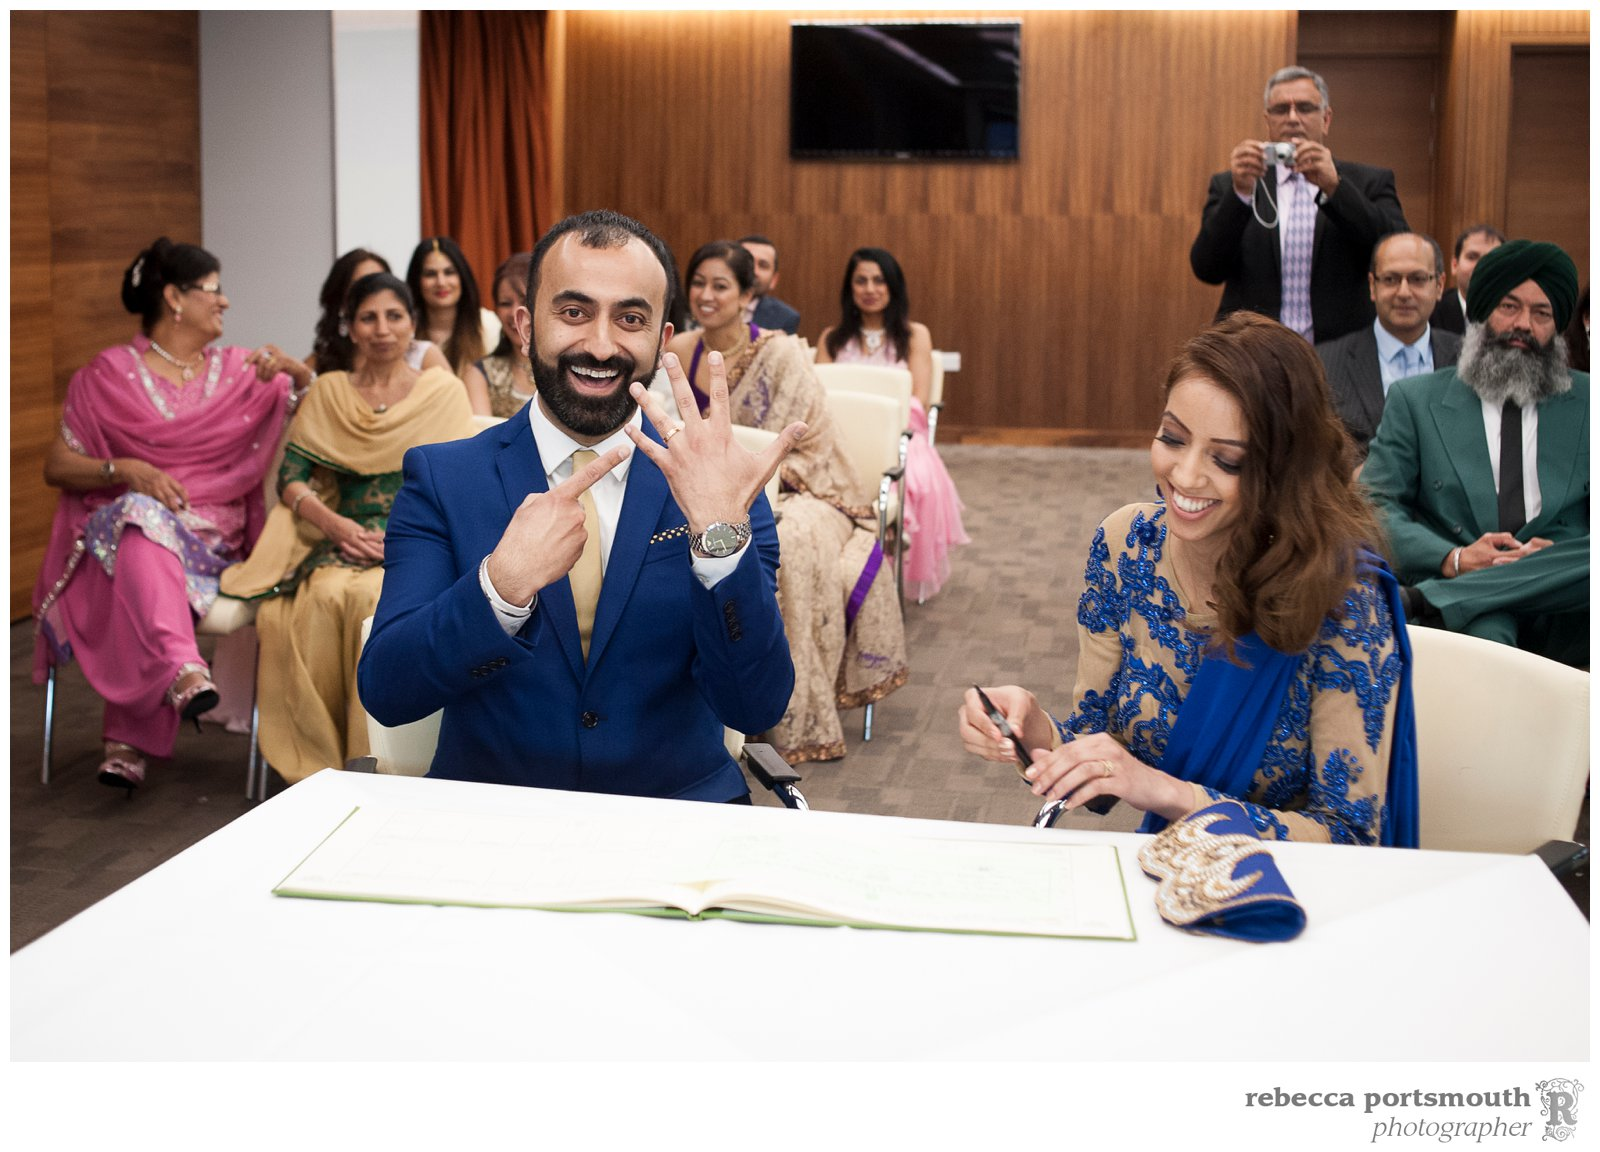 While the groom shows of his brand new wedding ring, his bride gets ready to sign the register during their Chelsea Football Club wedding. Photographer: Rebecca Portsmouth